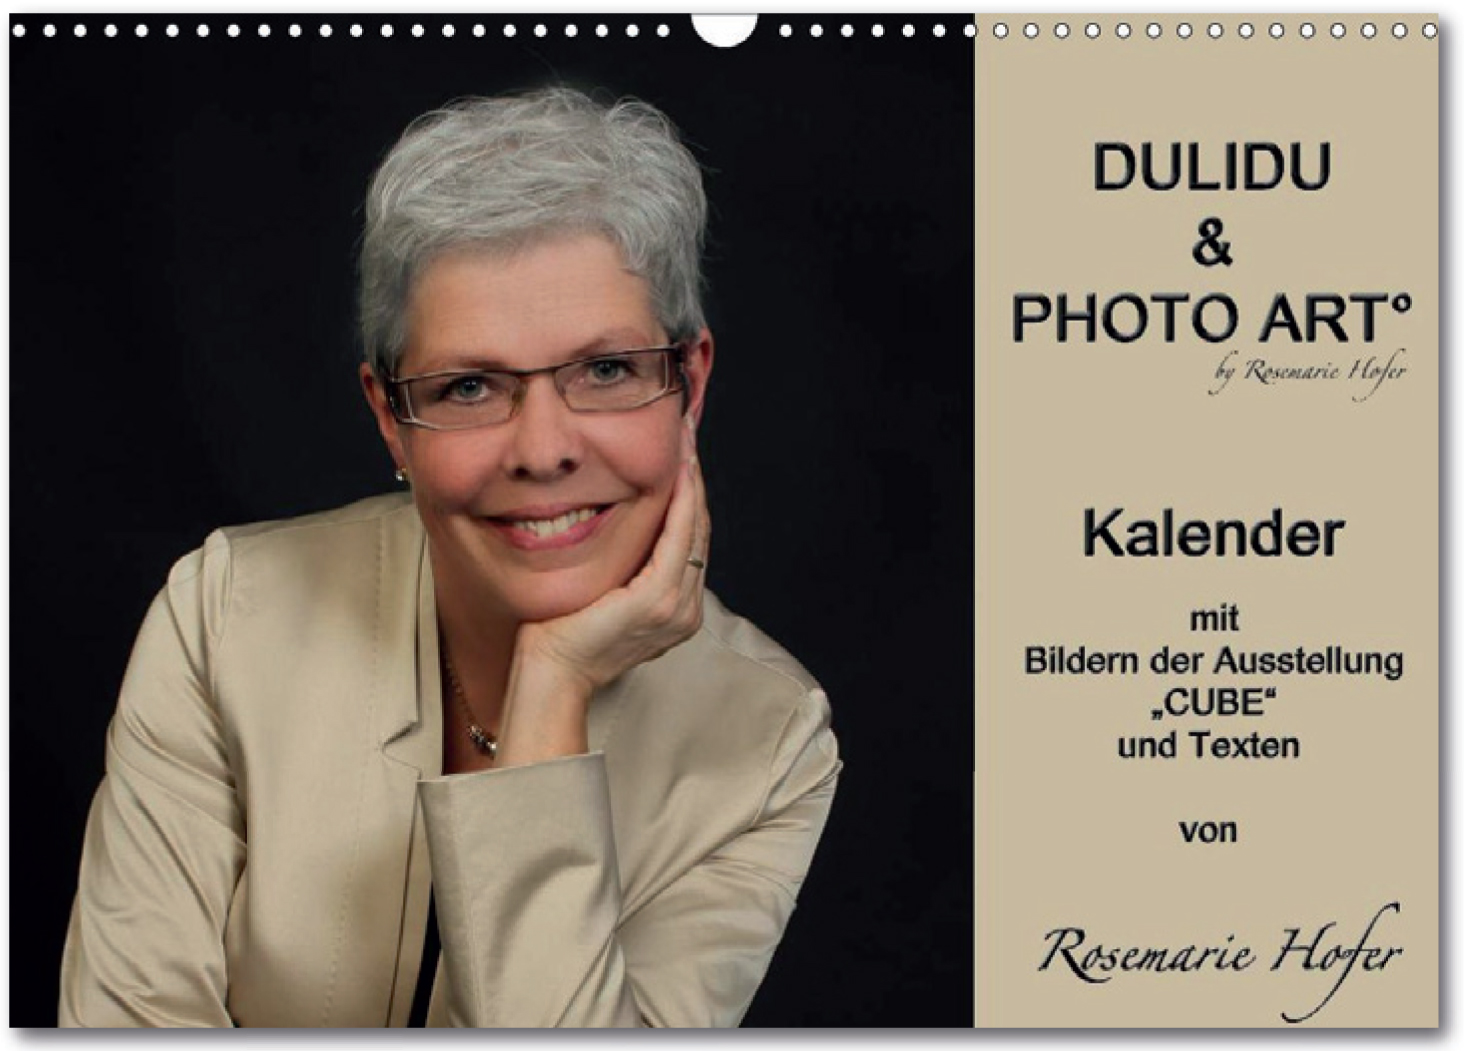 DULIDU-PHOTO-ART°-by-Rosemarie-Hofer--Kalender-&-Posterbooks